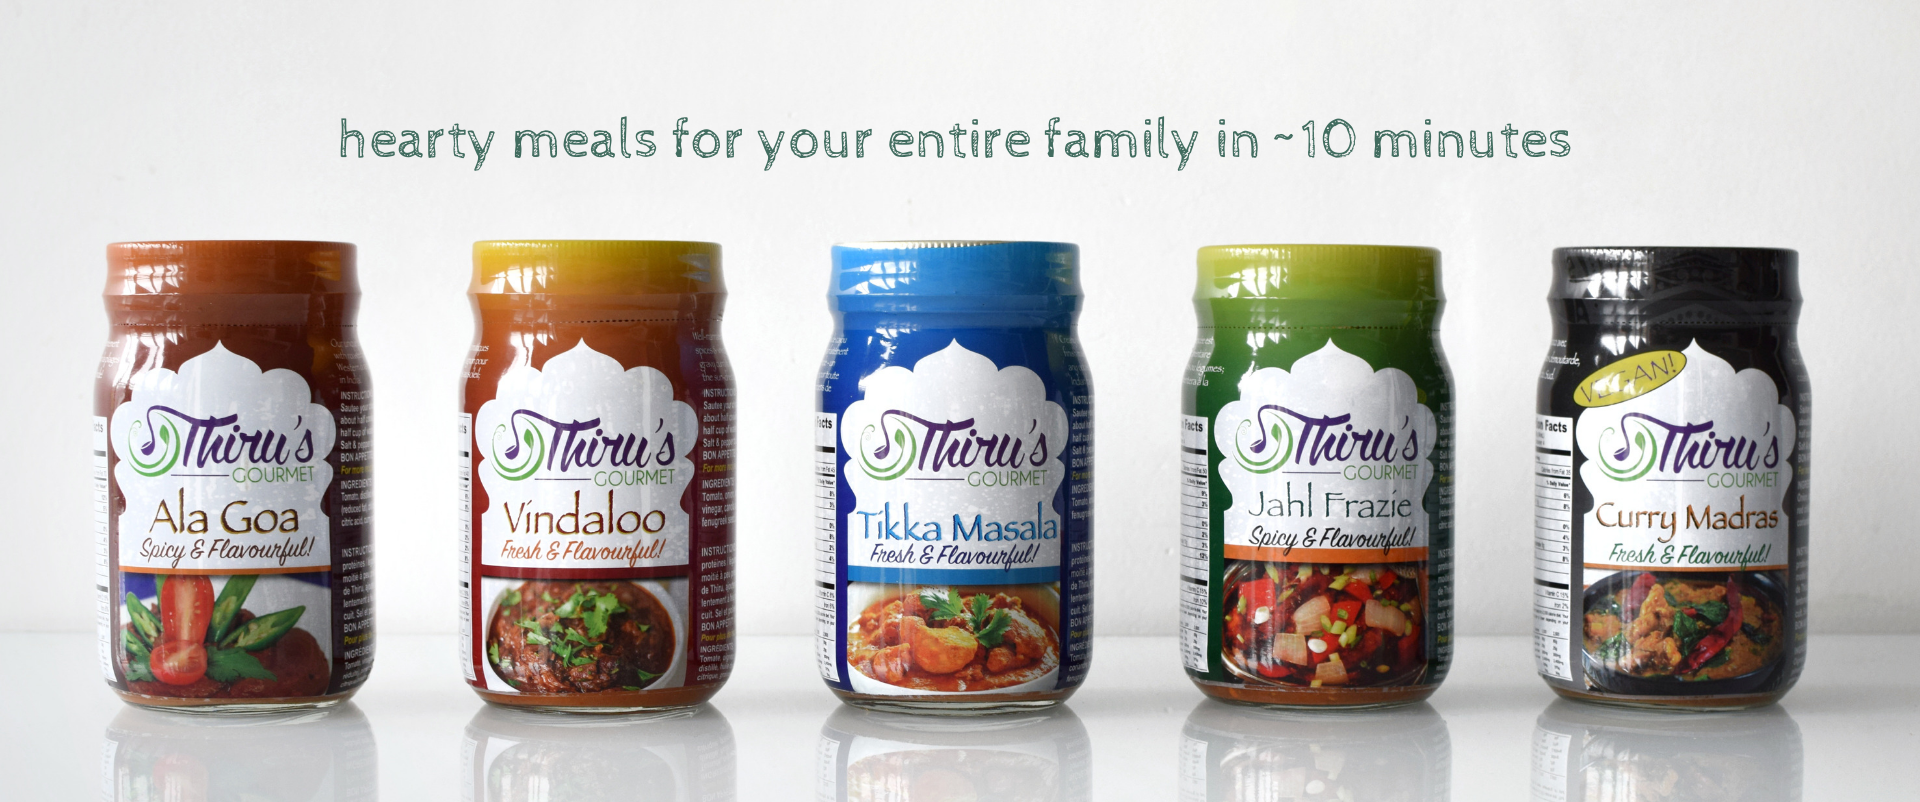 Hearty meals for your entire family in 10 minutes.